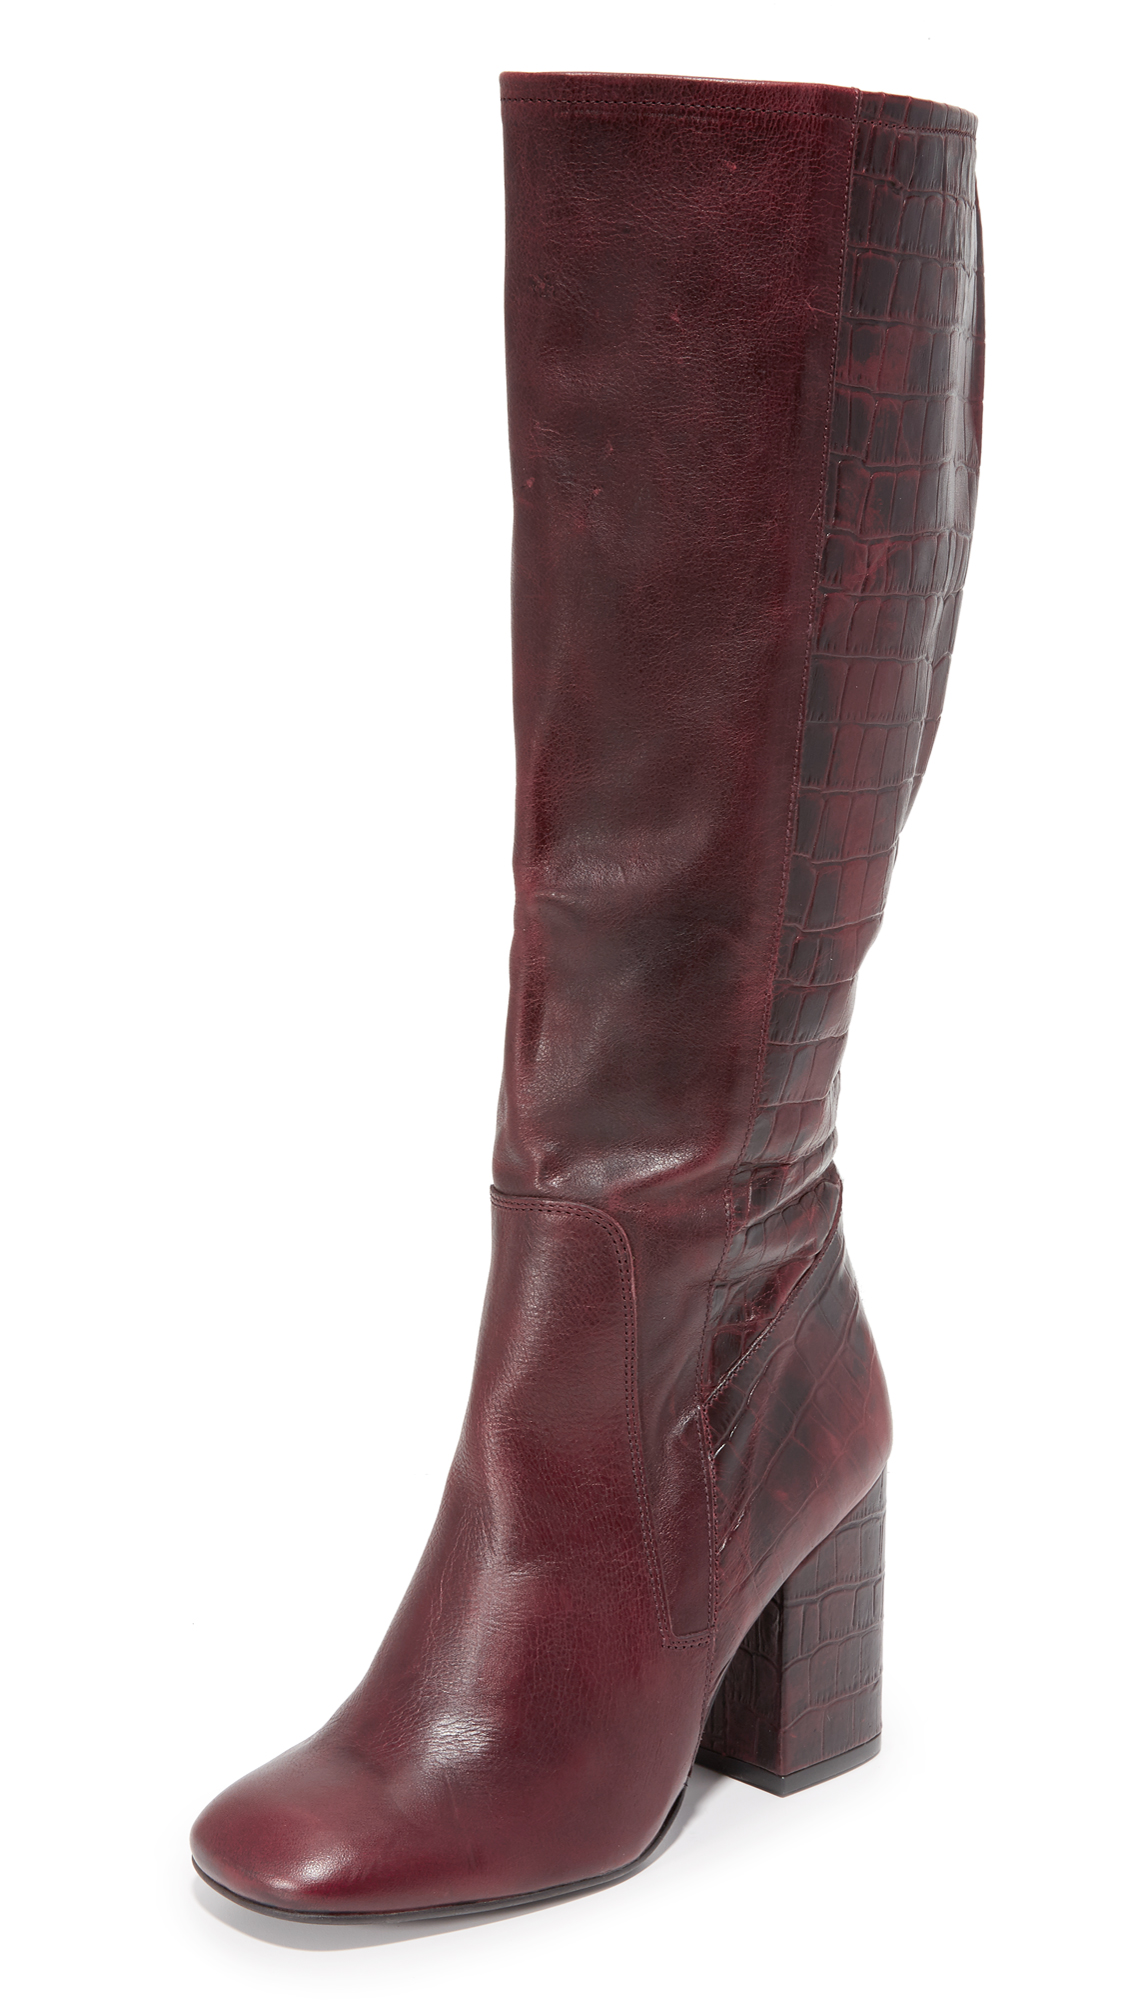 Free People High Ground Tall Boots - Red